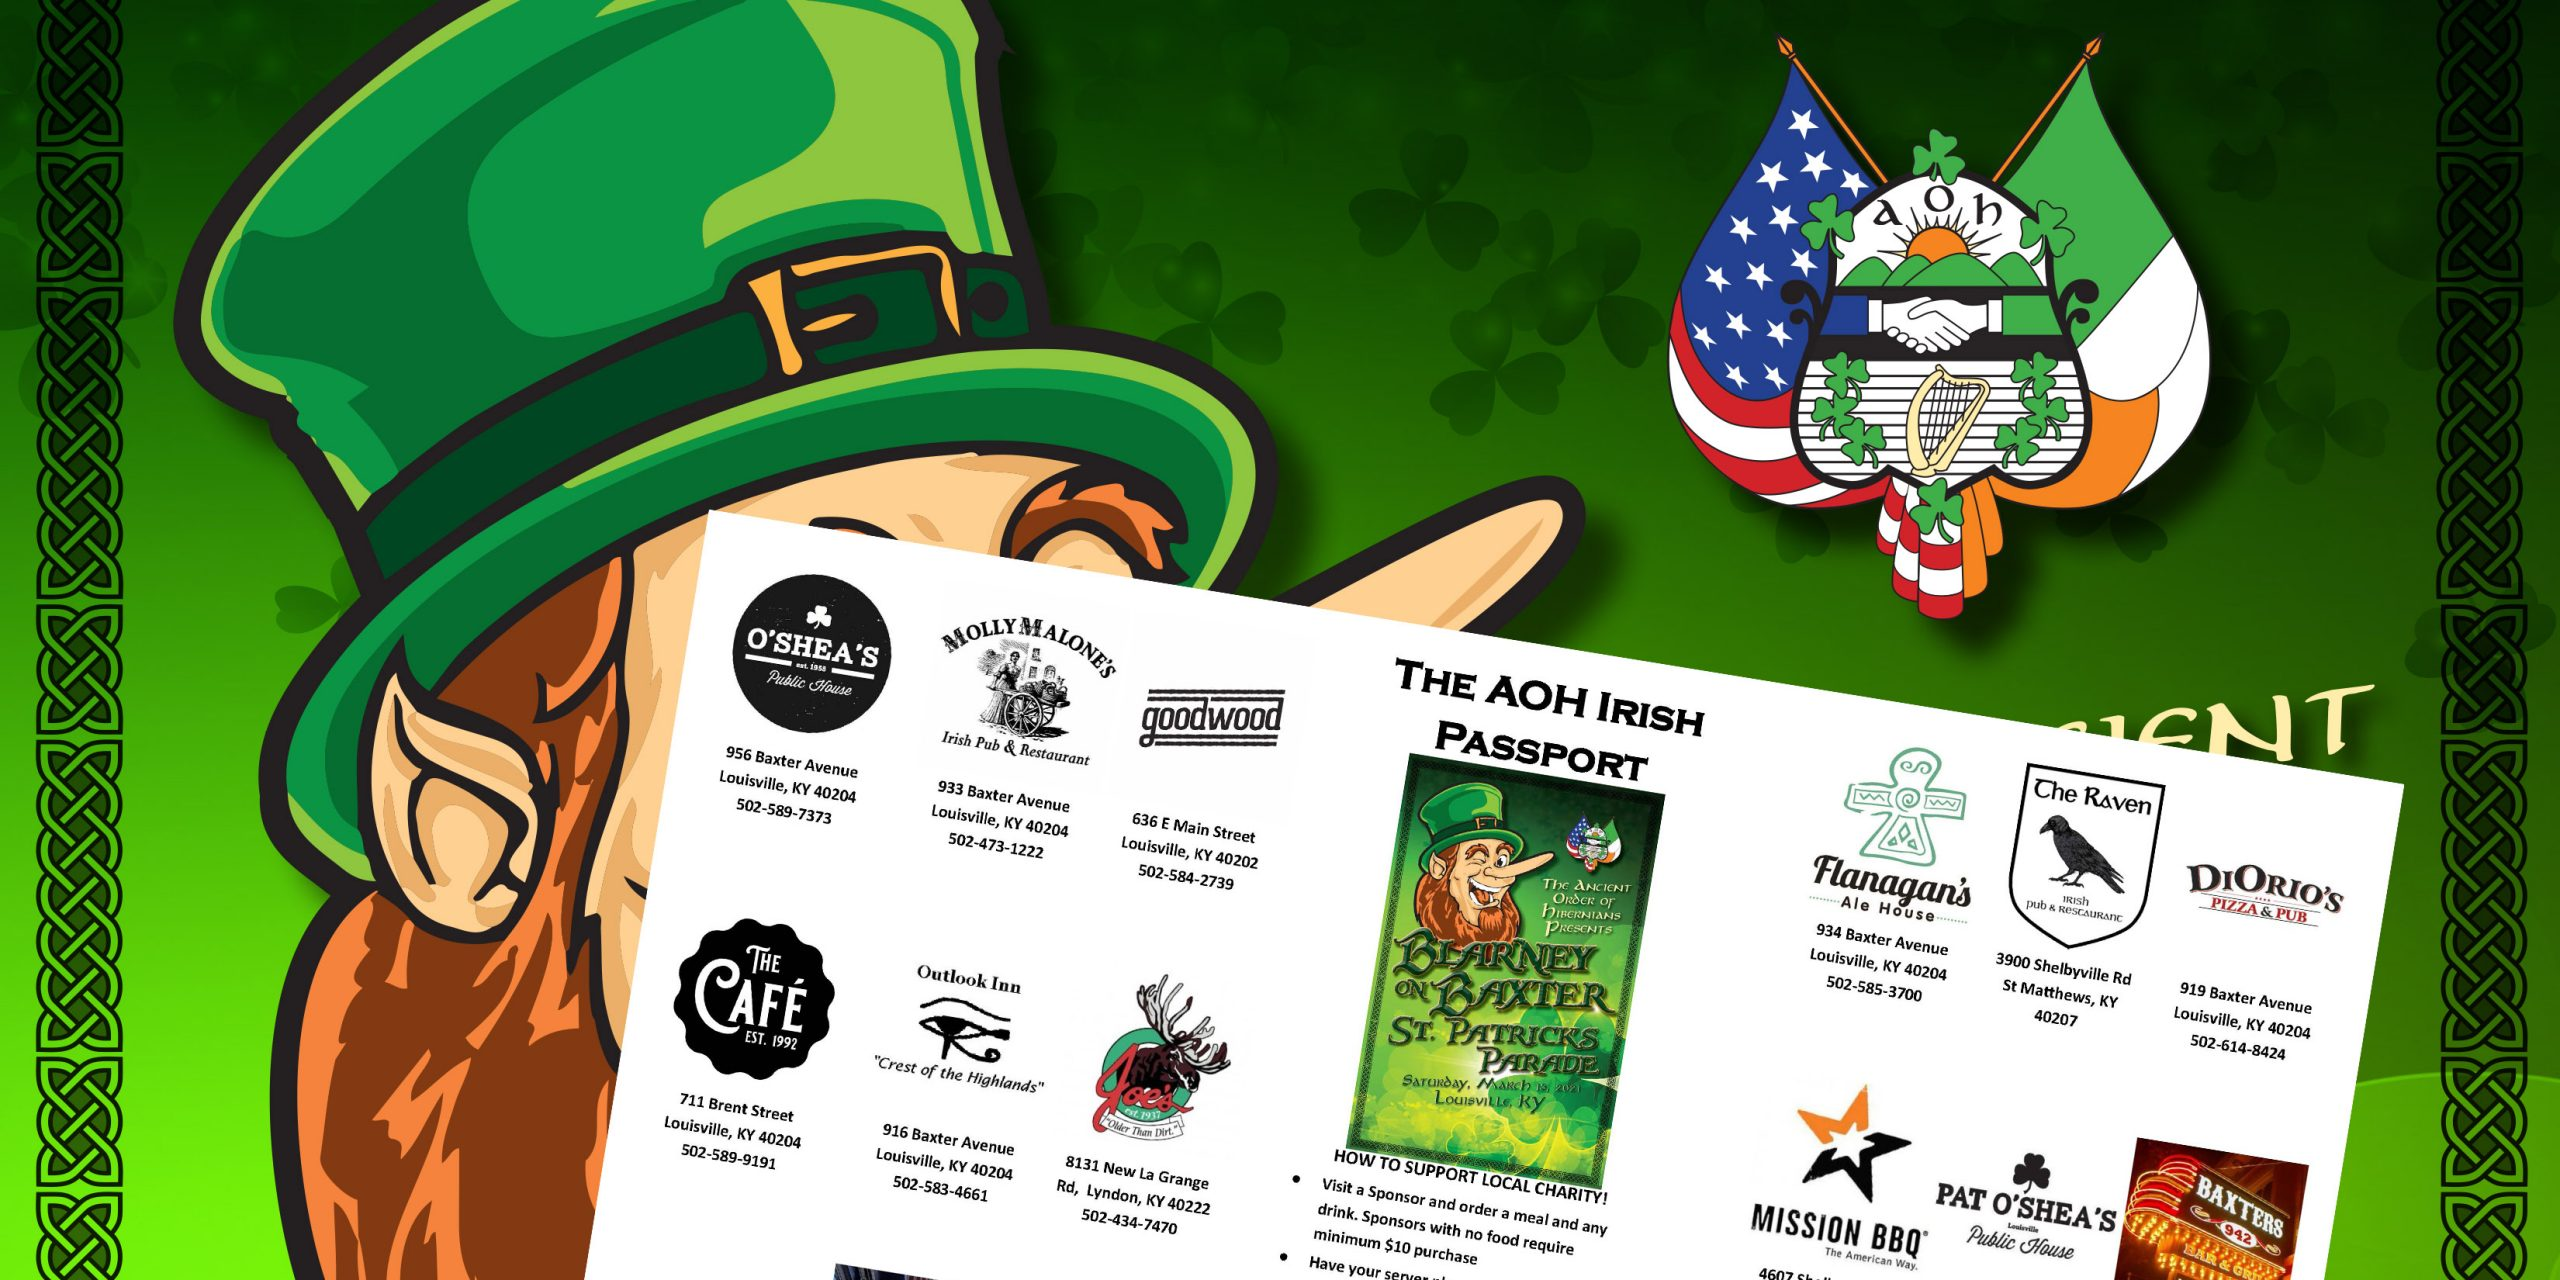 The AOH Irish Passport is available!